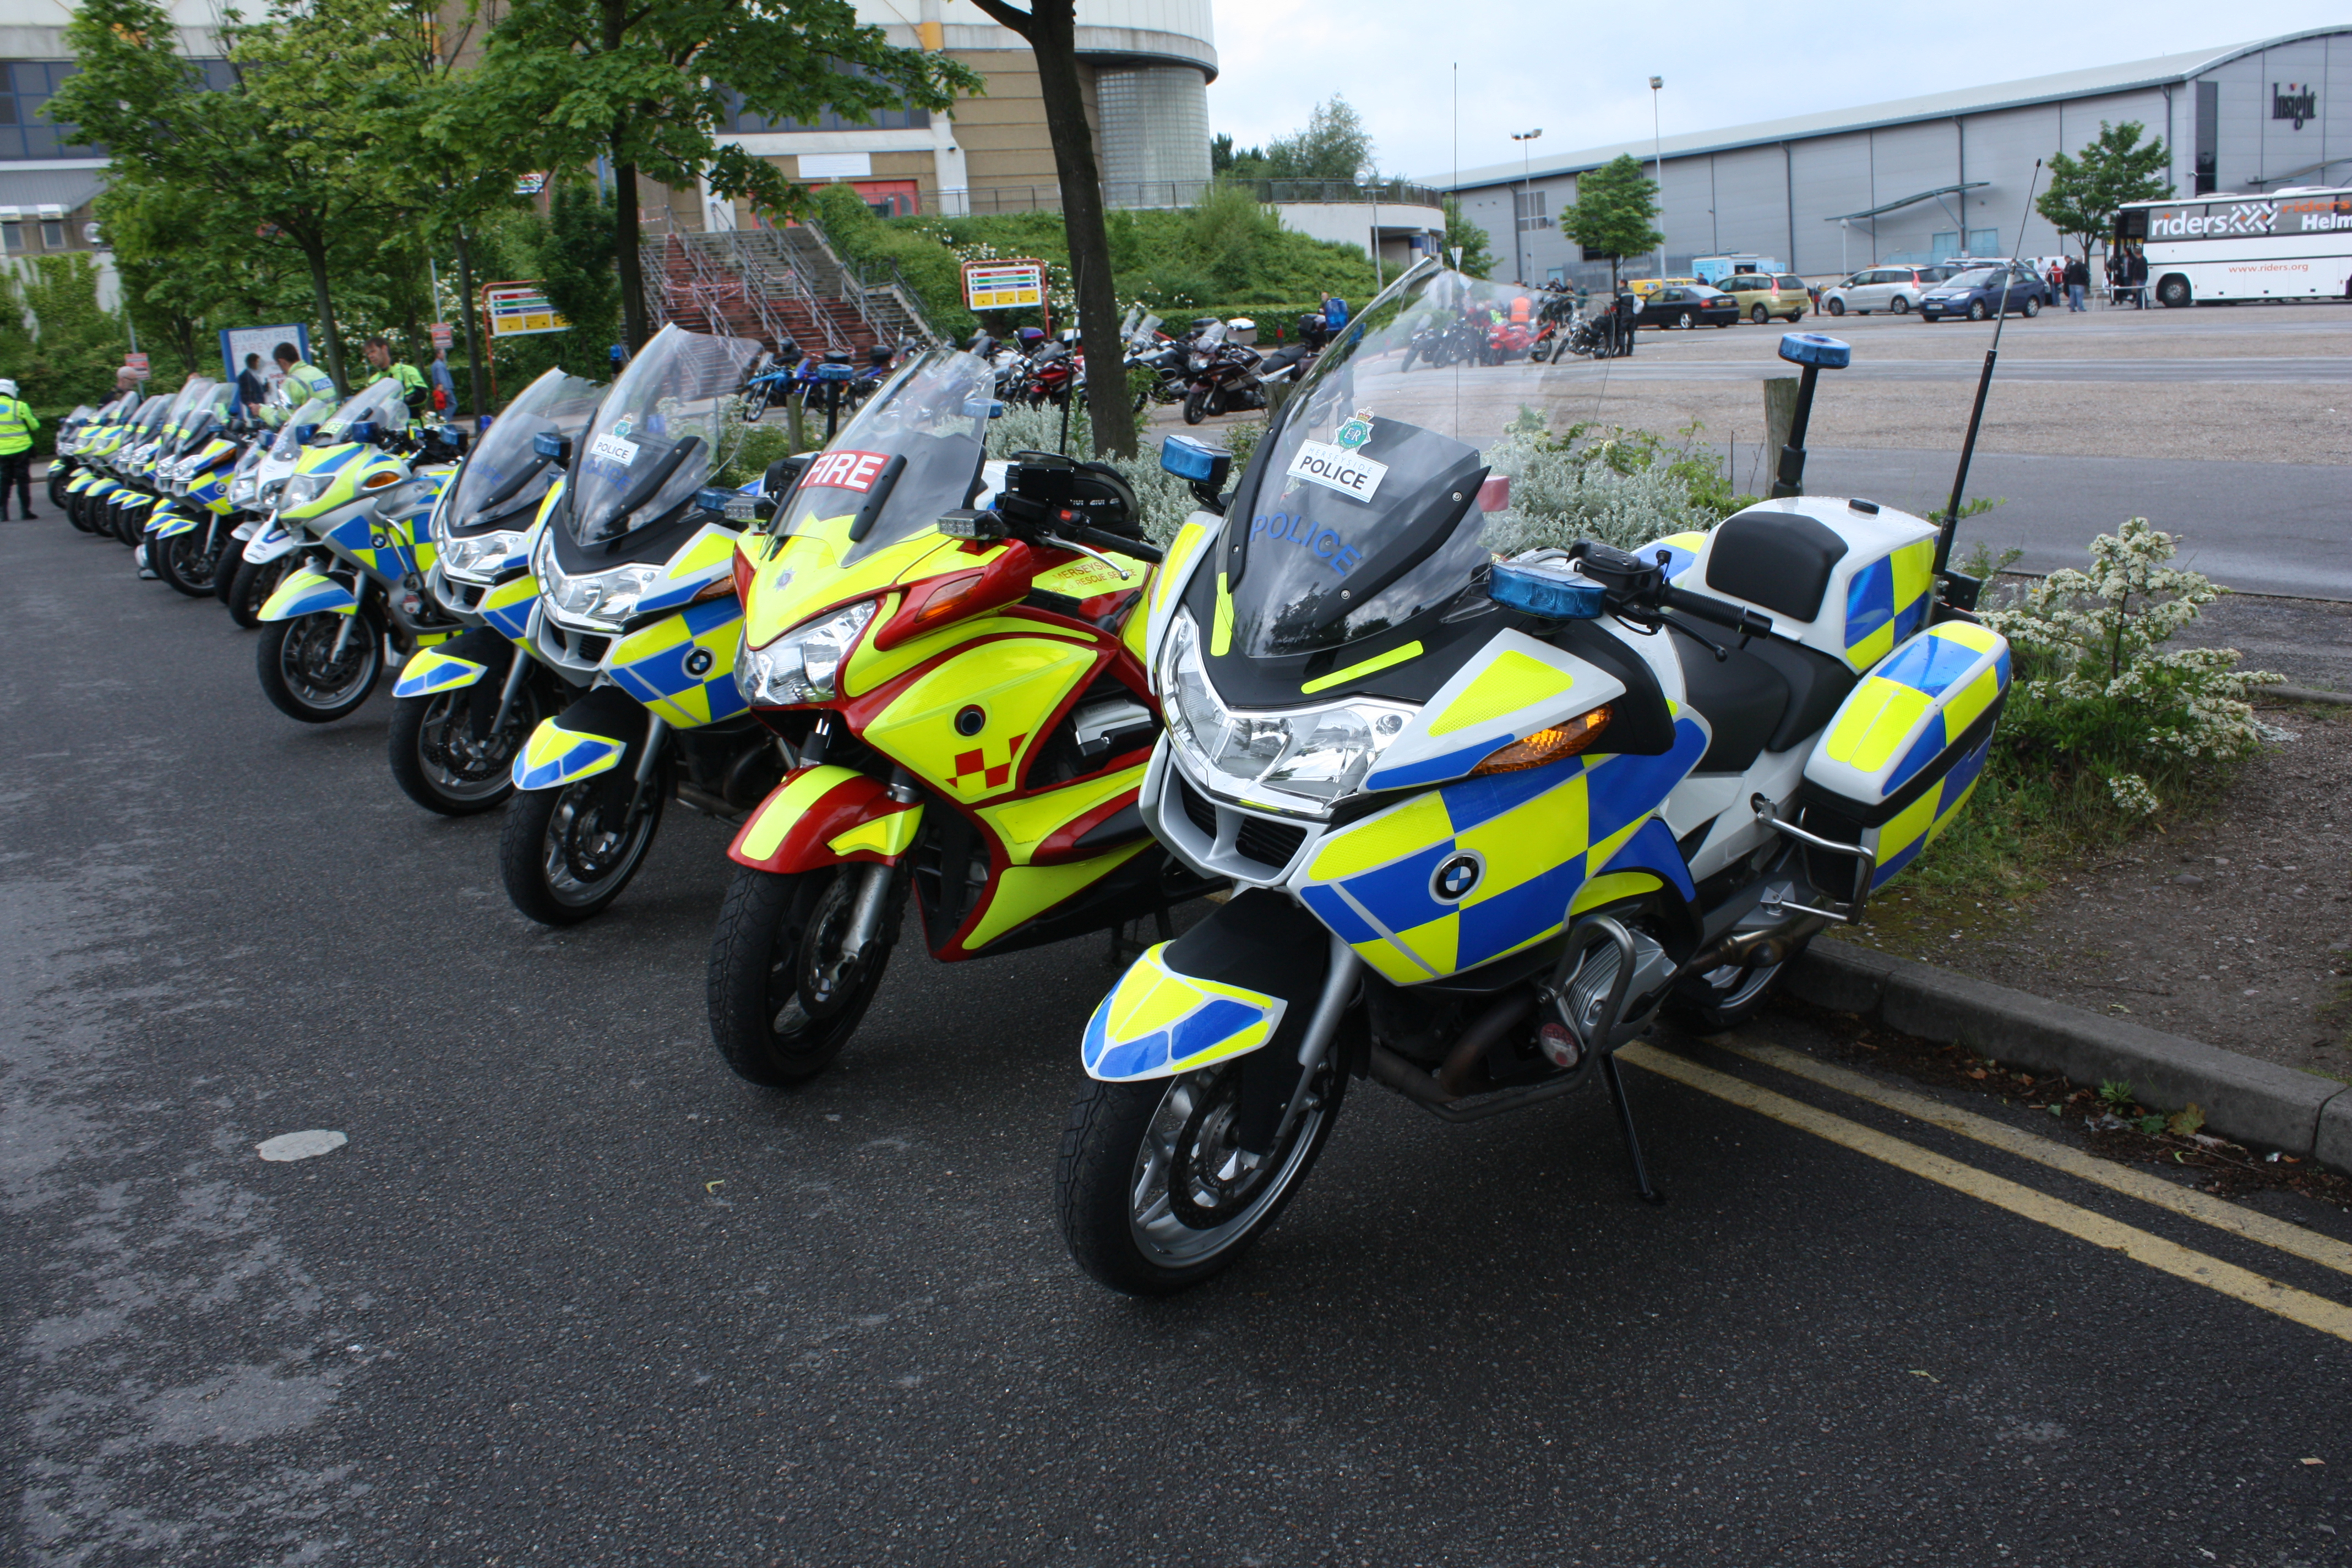 File:Merseyside police and fire motorcycles.jpg - Wikimedia Commons